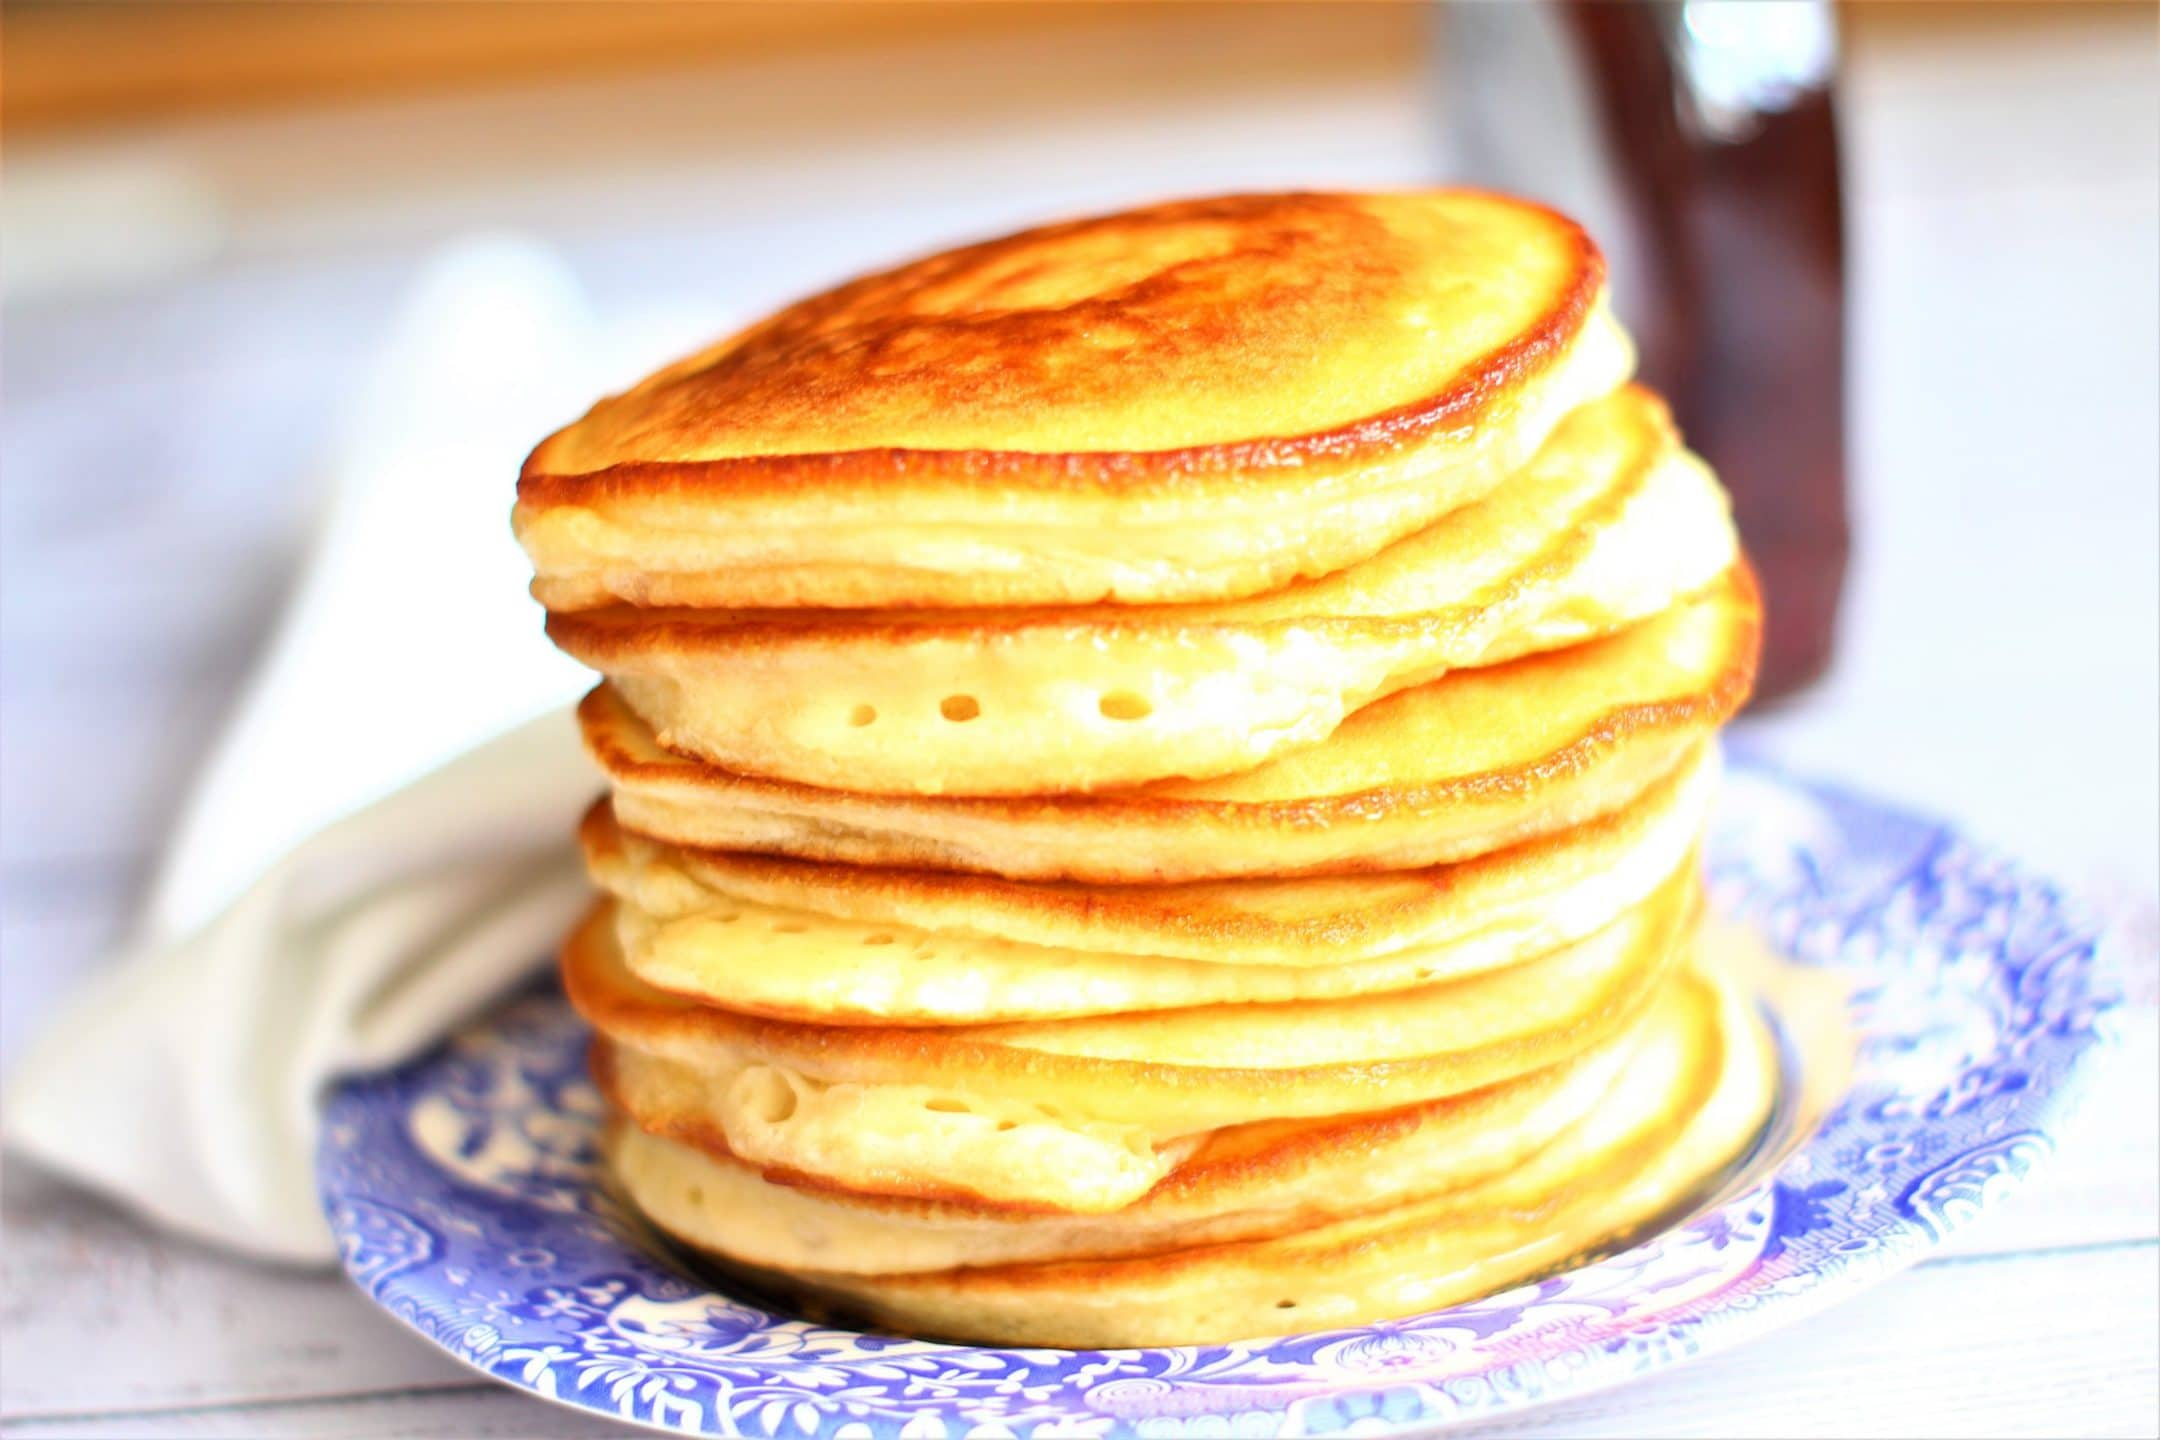 stacked pancakes on a blue and white plate